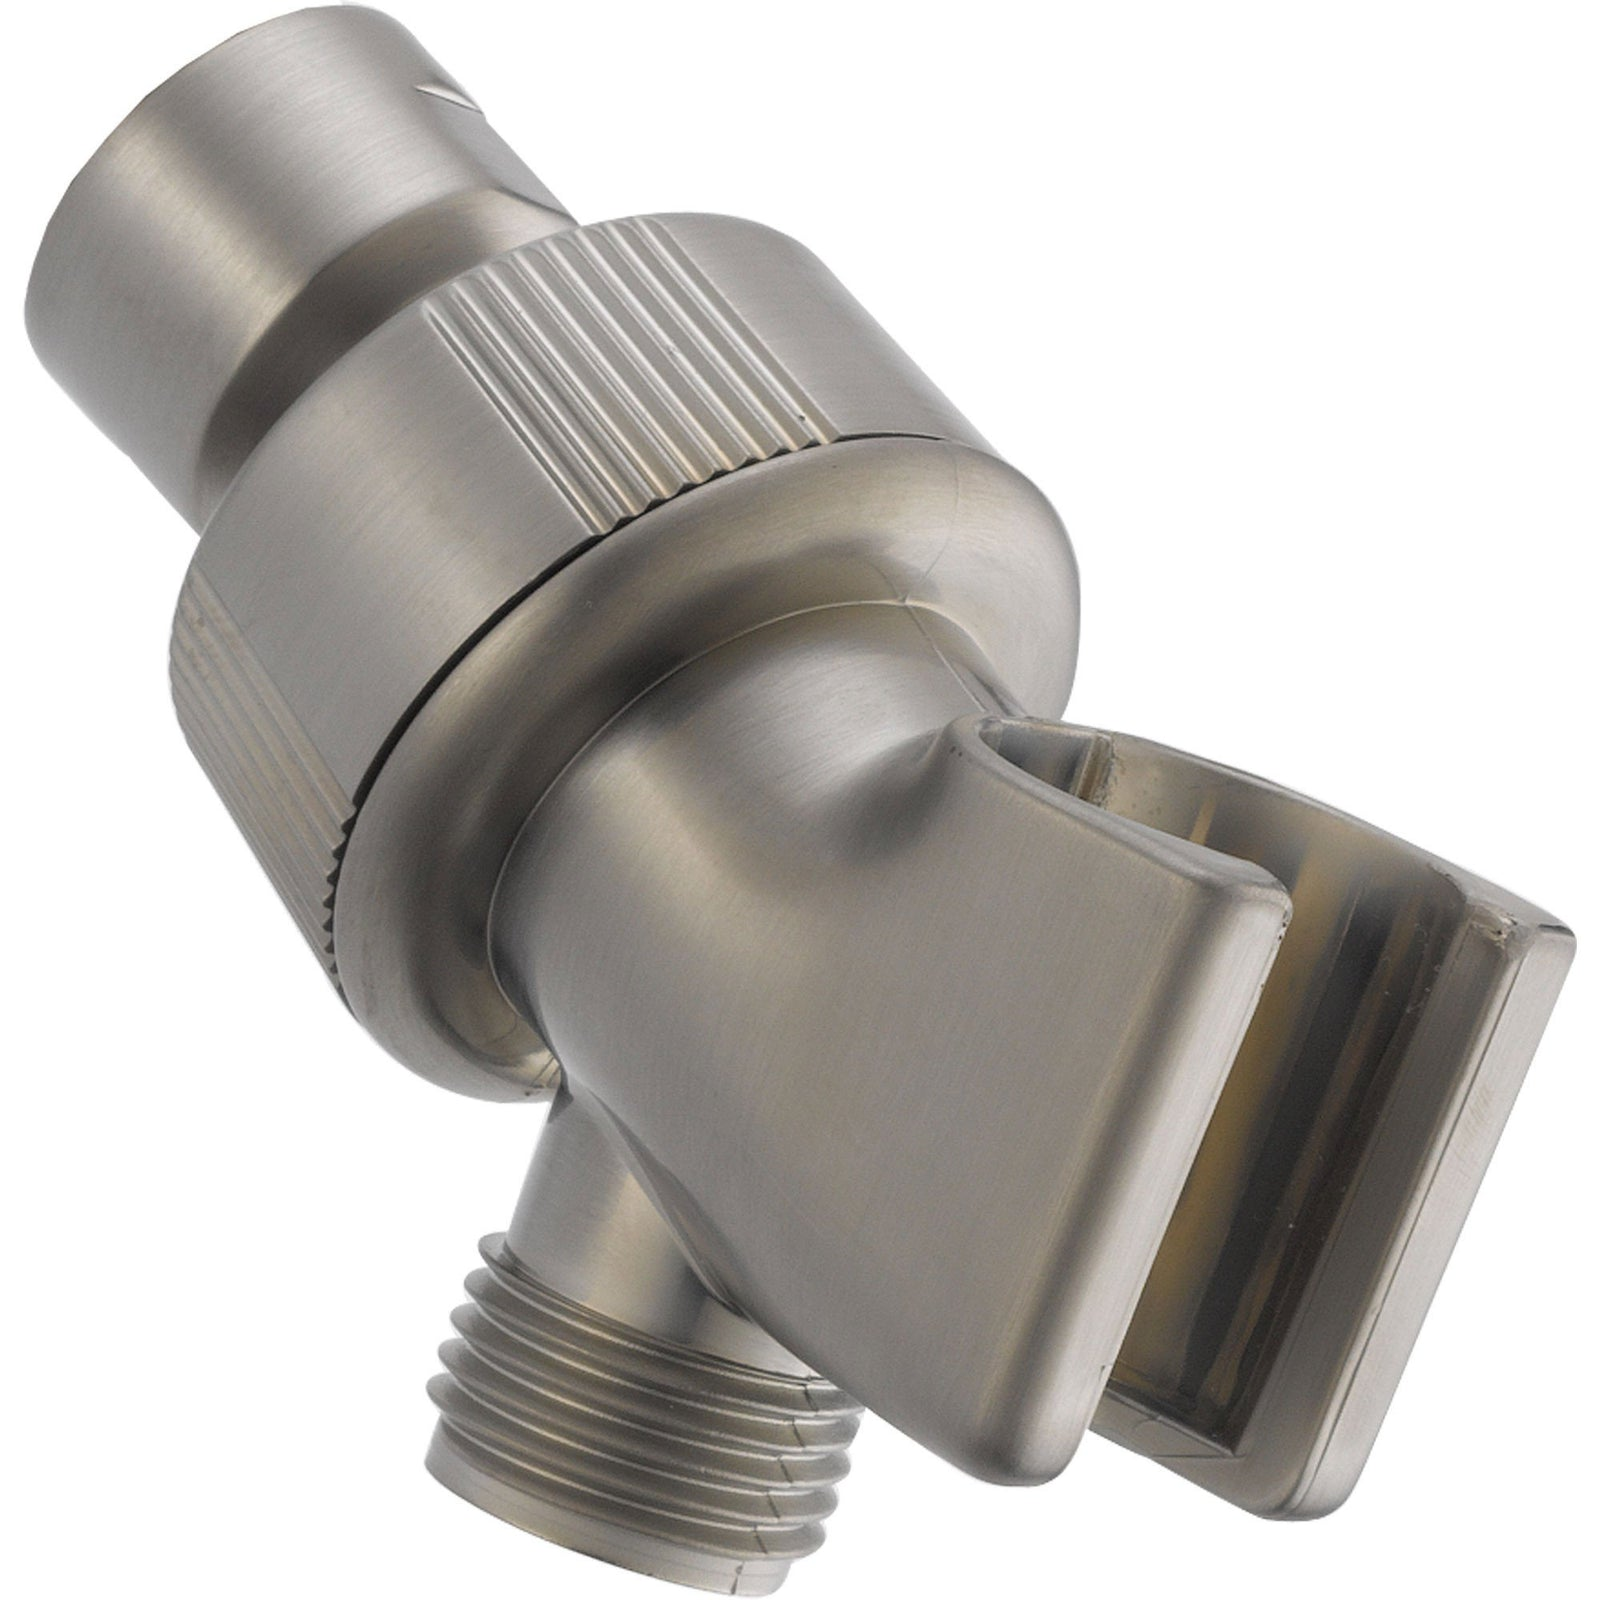 Delta Shower Arm Diverter for Hand Shower Chrome FREE TAX FREE SHIPPING